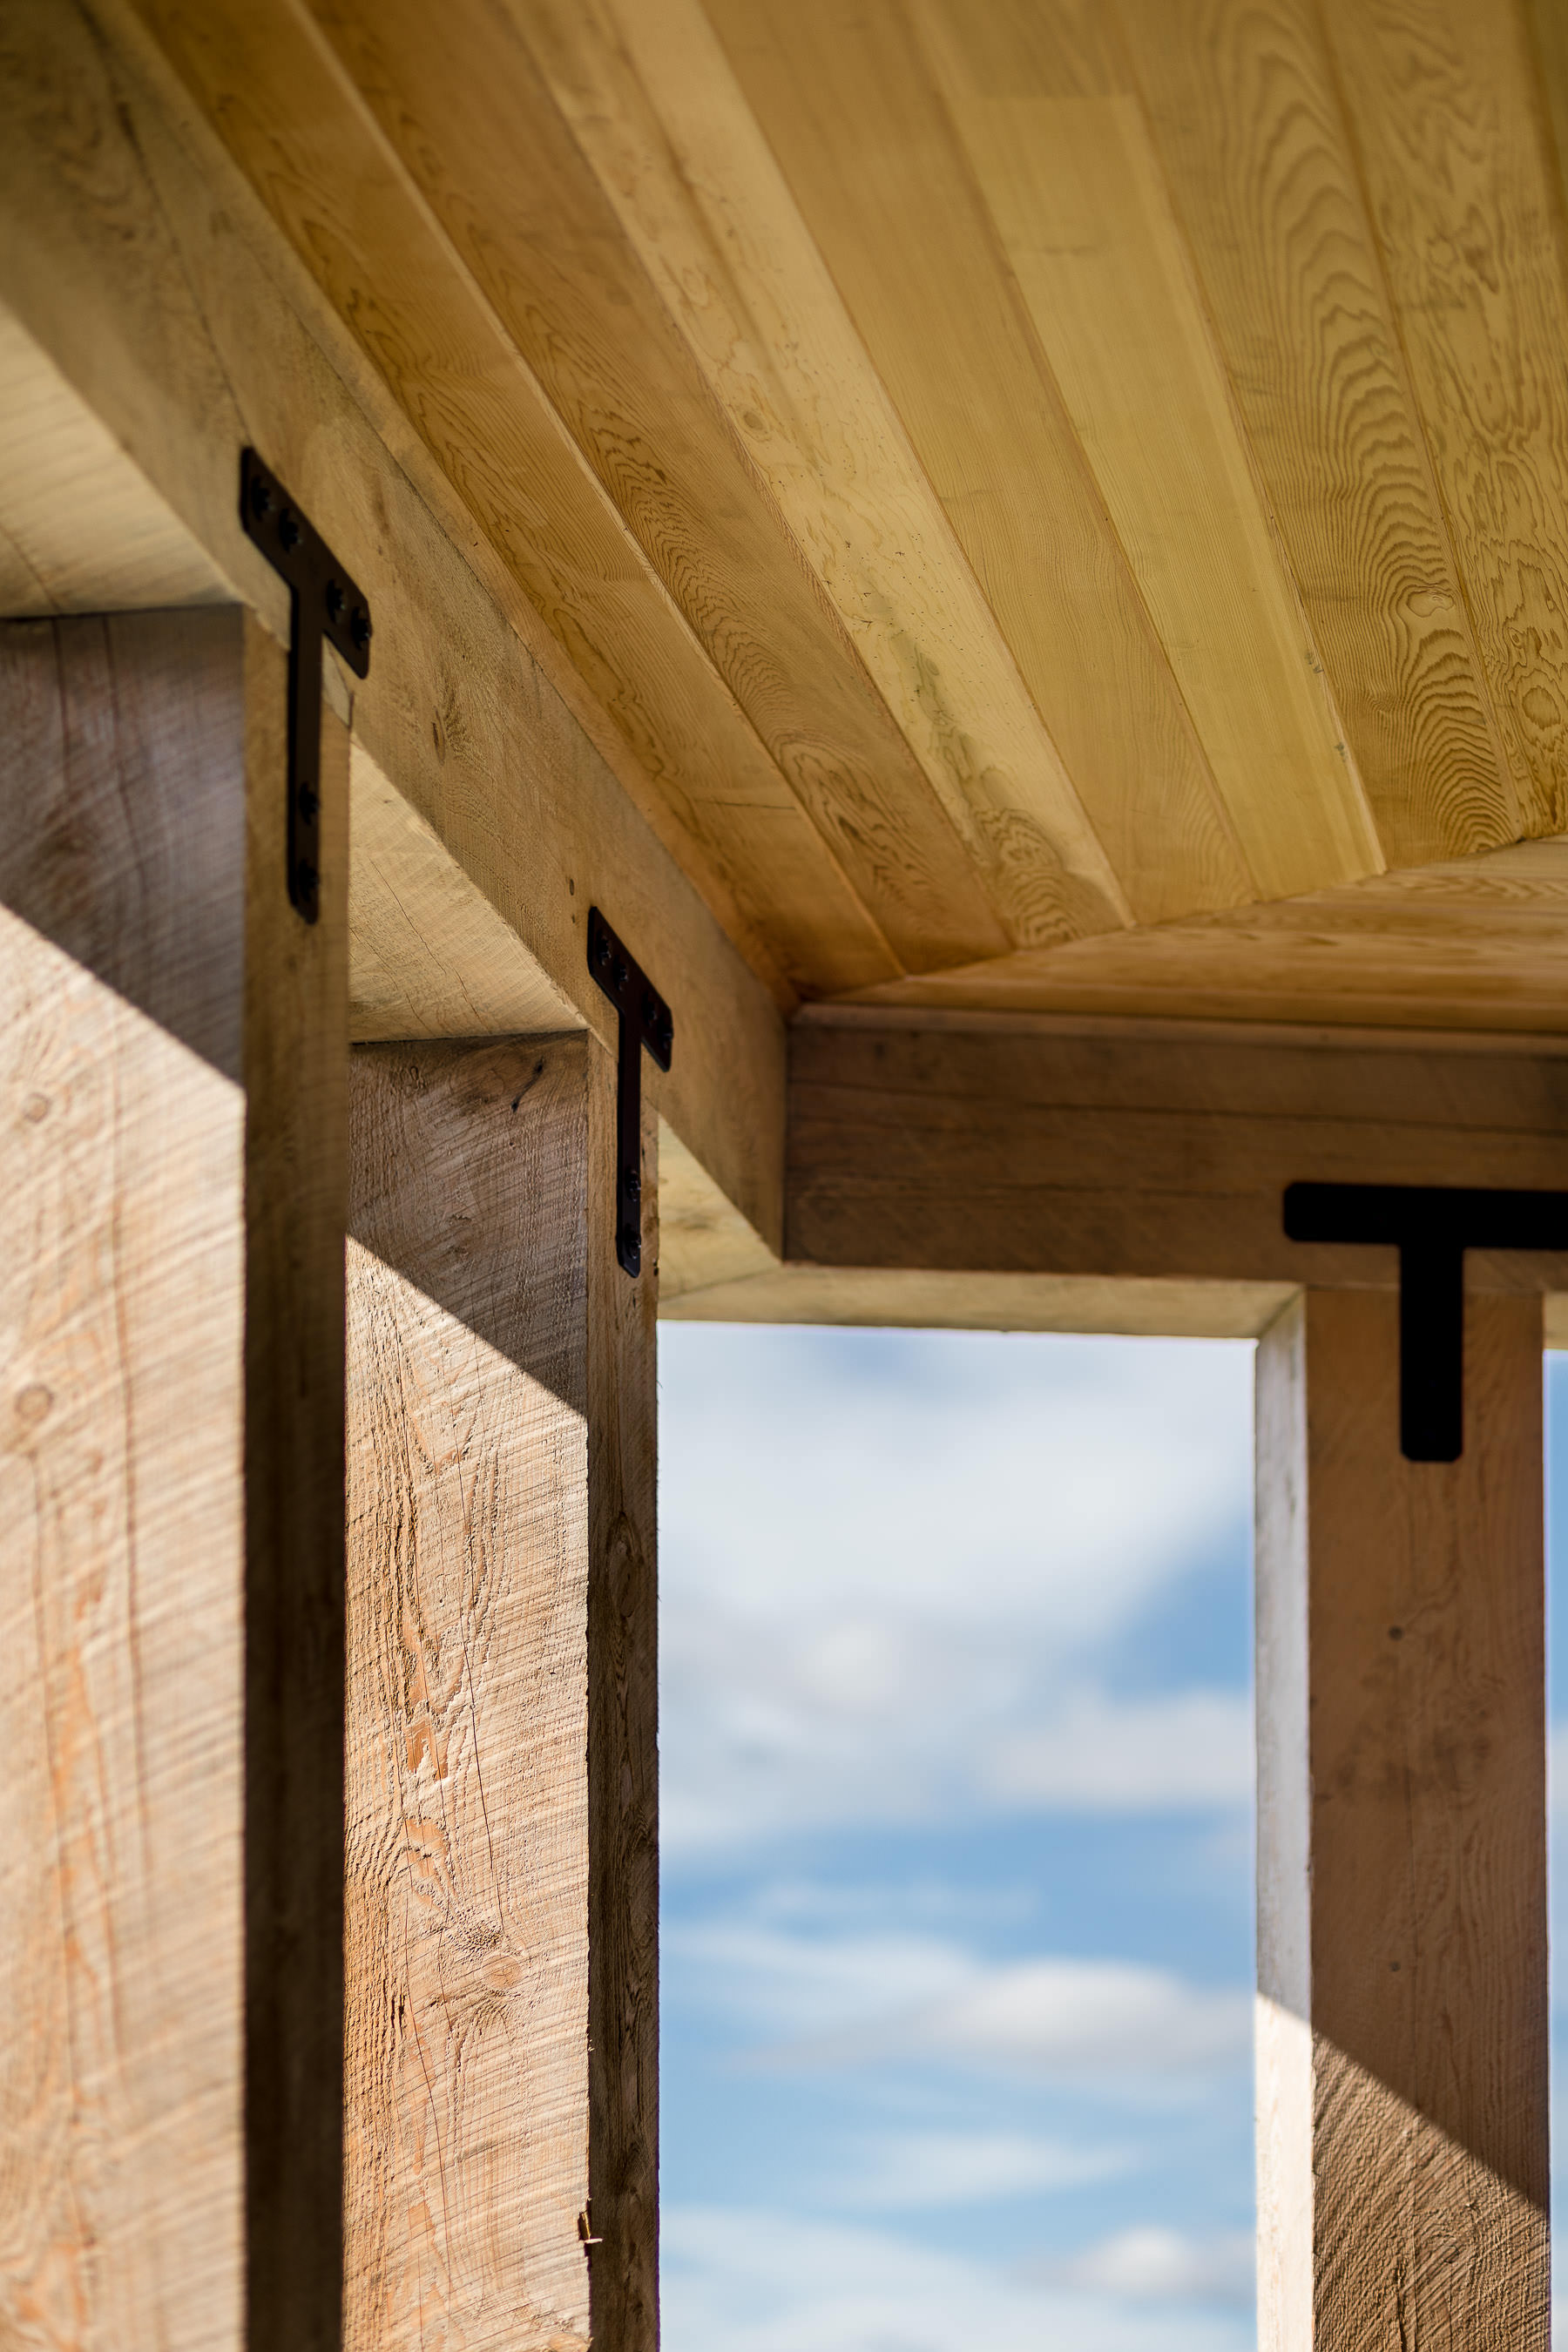 Detail photo of the porch timbers and metal brackets of the Strode Independent Living Facility in Randolph by Vermont commercial photographer Stina Booth